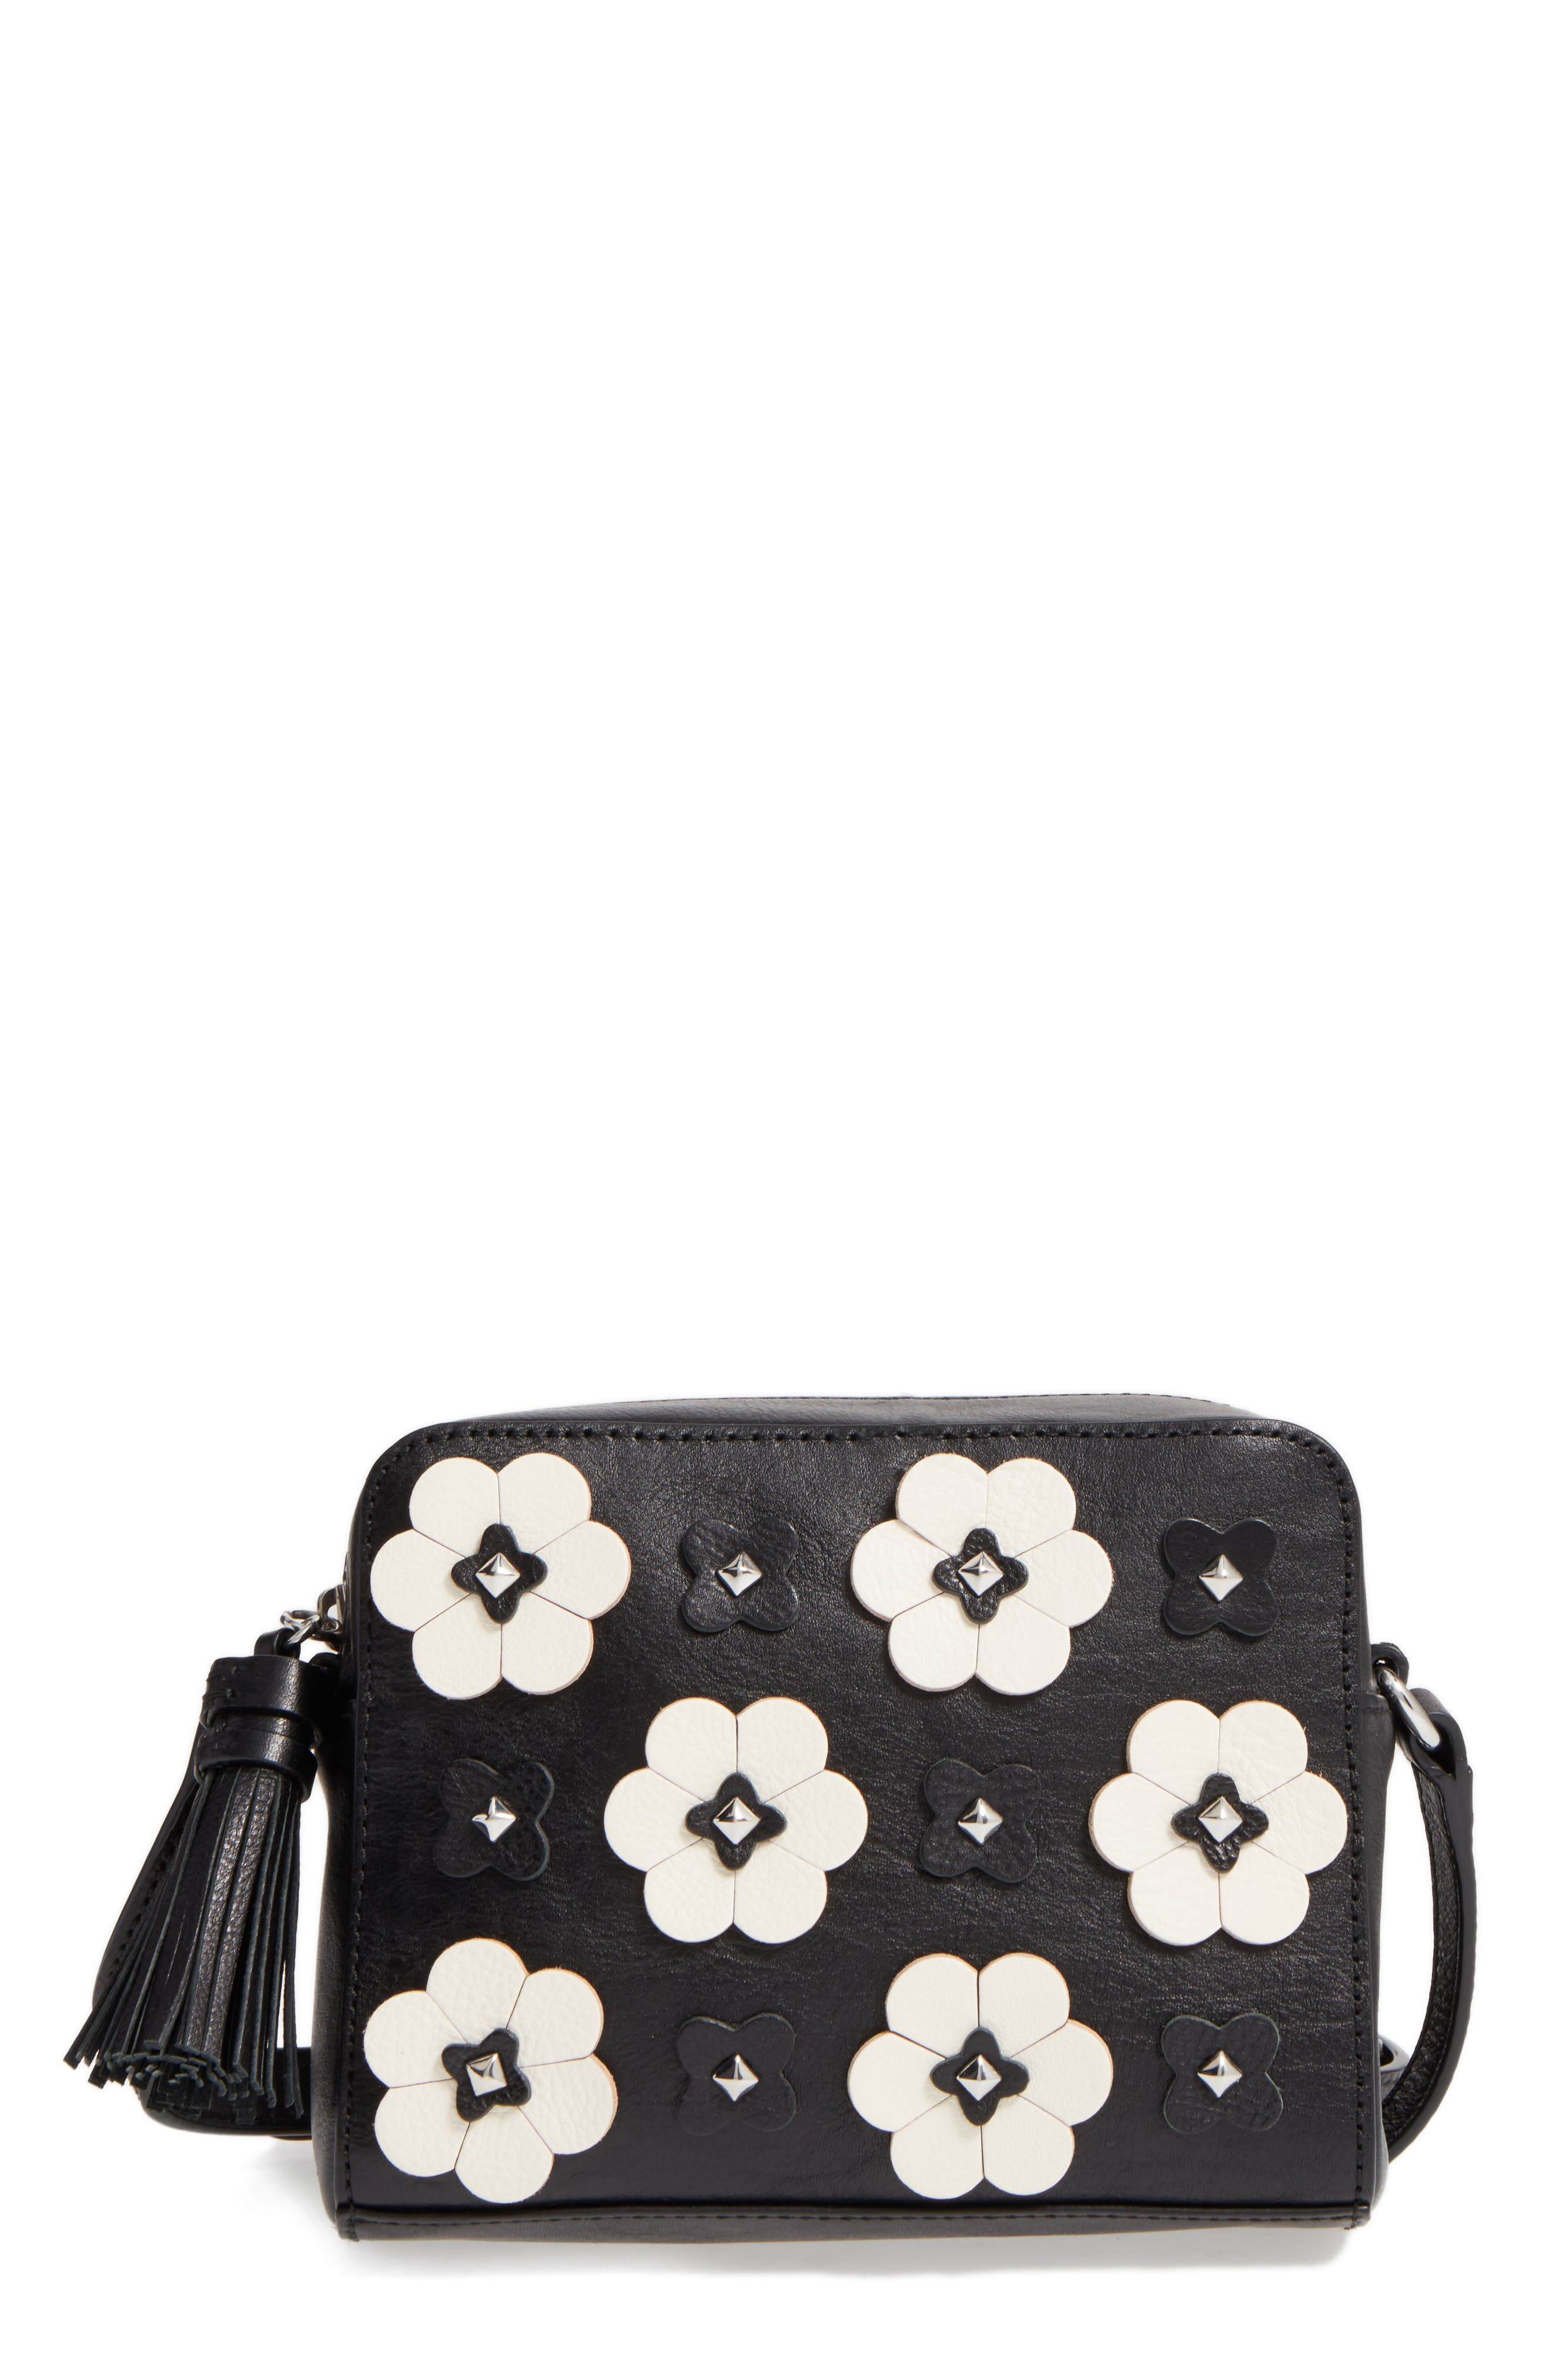 Rebecca Minkoff Floral Appliquu00e9 Leather Camera Bag | Nordstrom